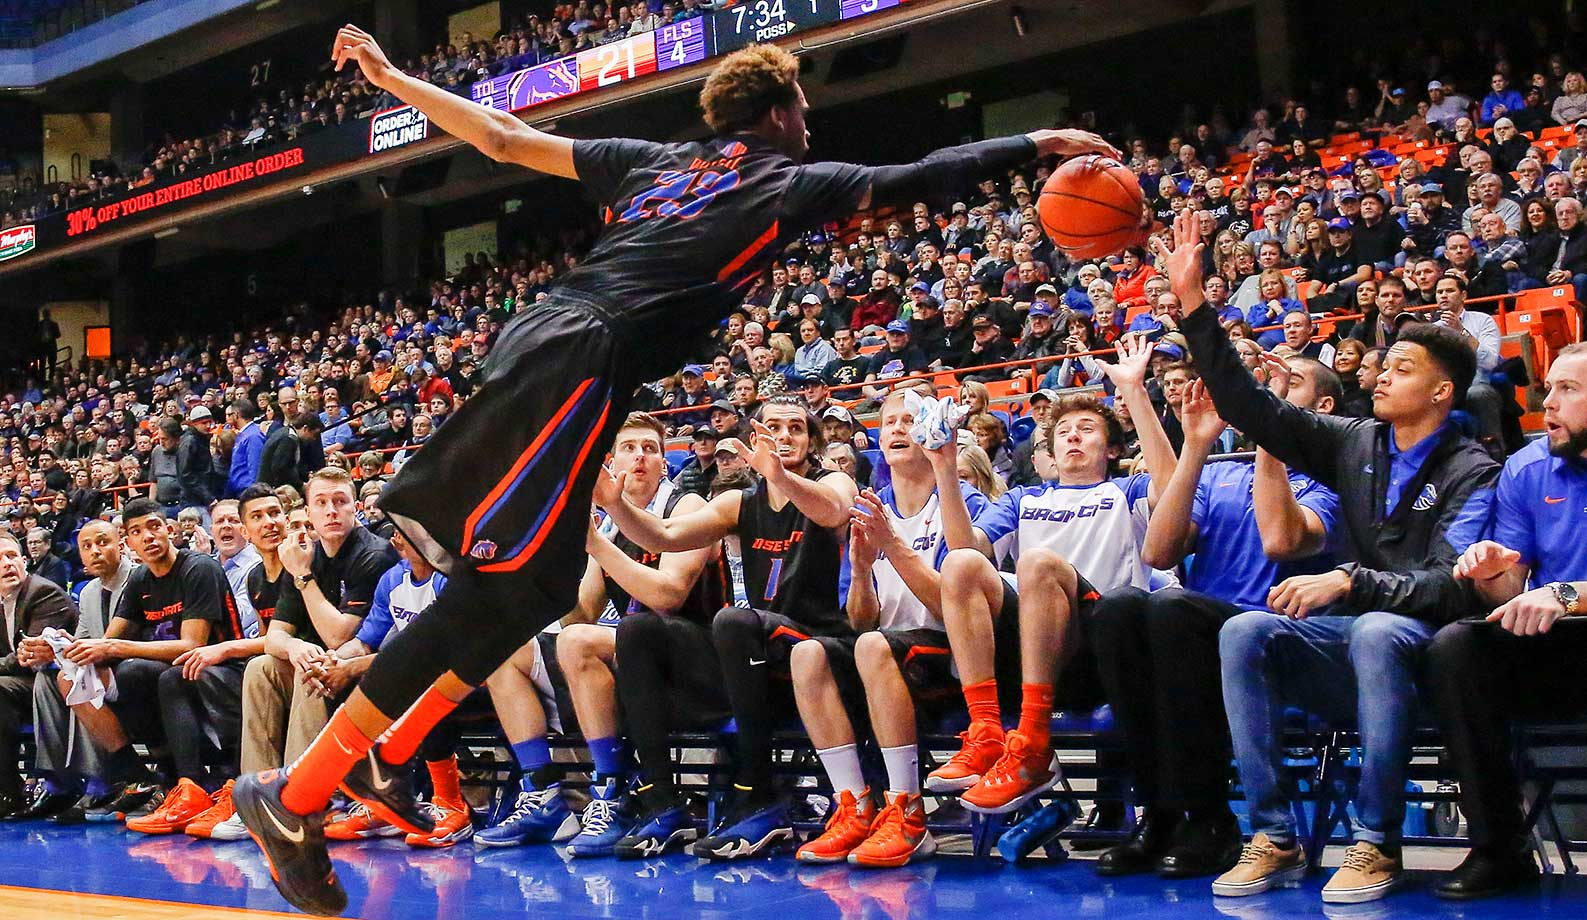 Boise State's James Webb III tries to stop a ball from going out of bounds against Utah State in Boise, Idaho. Boise State won 70-67.